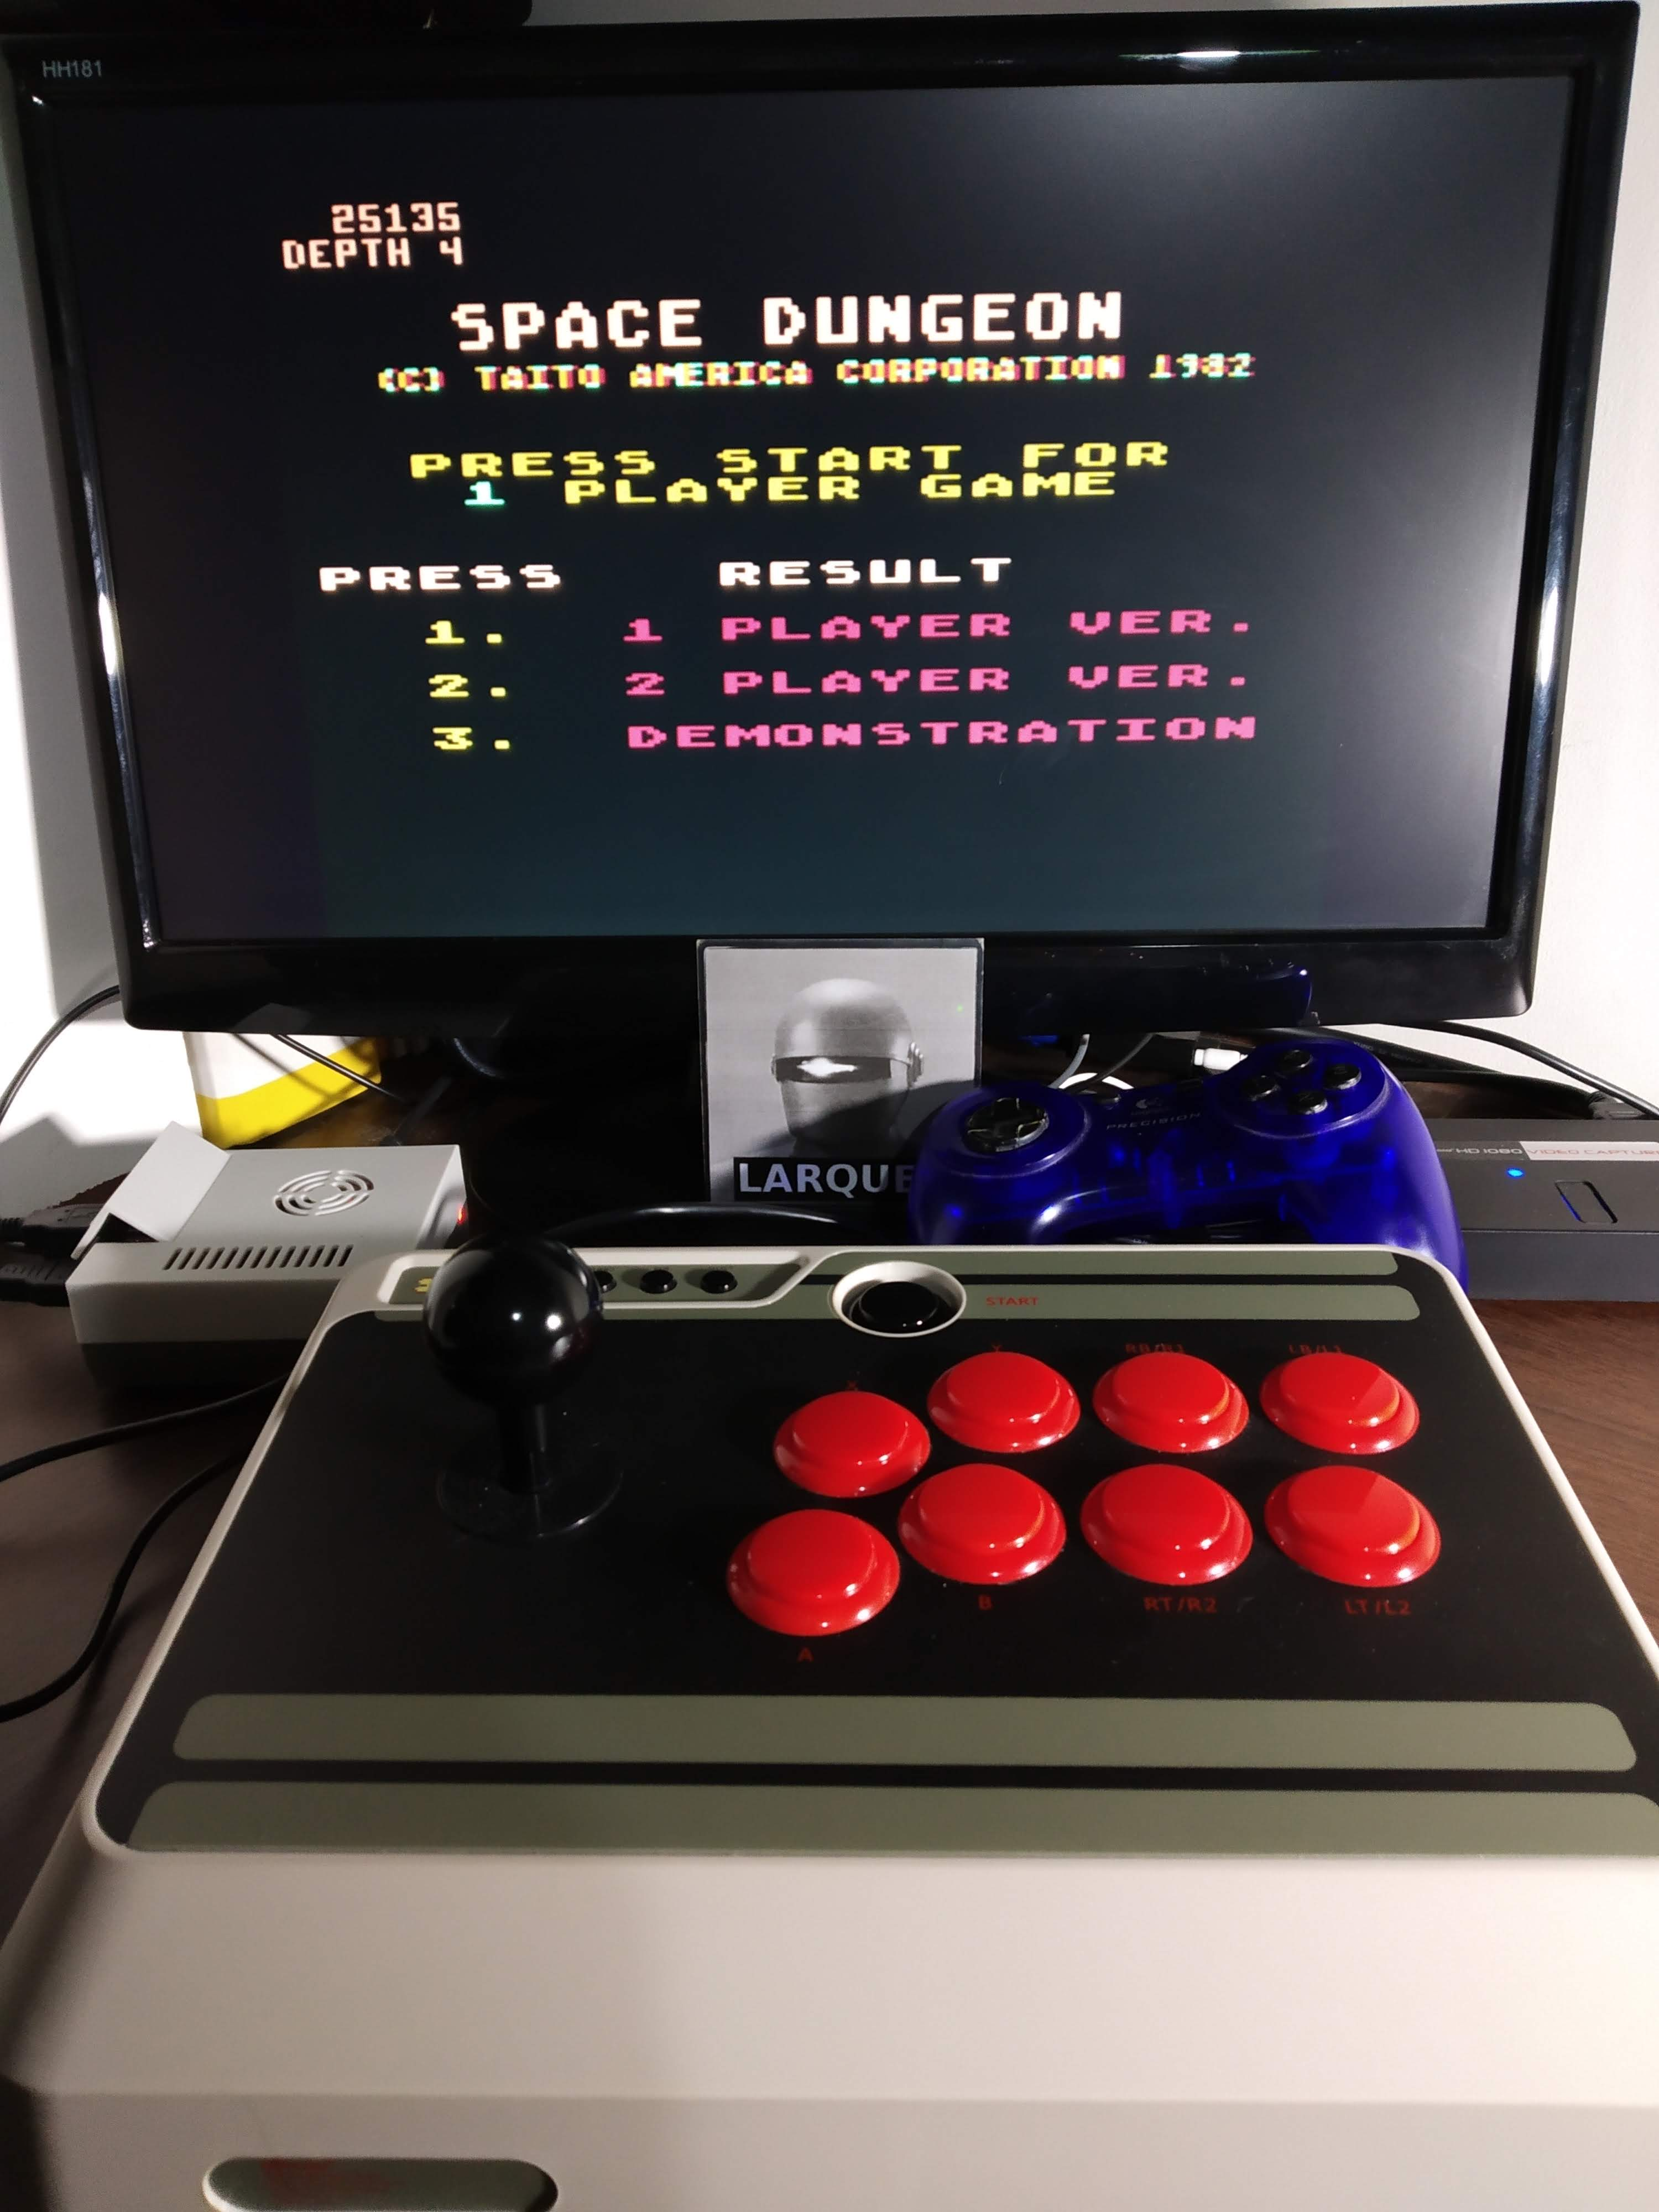 Larquey: Space Dungeon (Atari 5200 Emulated) 25,135 points on 2019-11-12 00:41:57